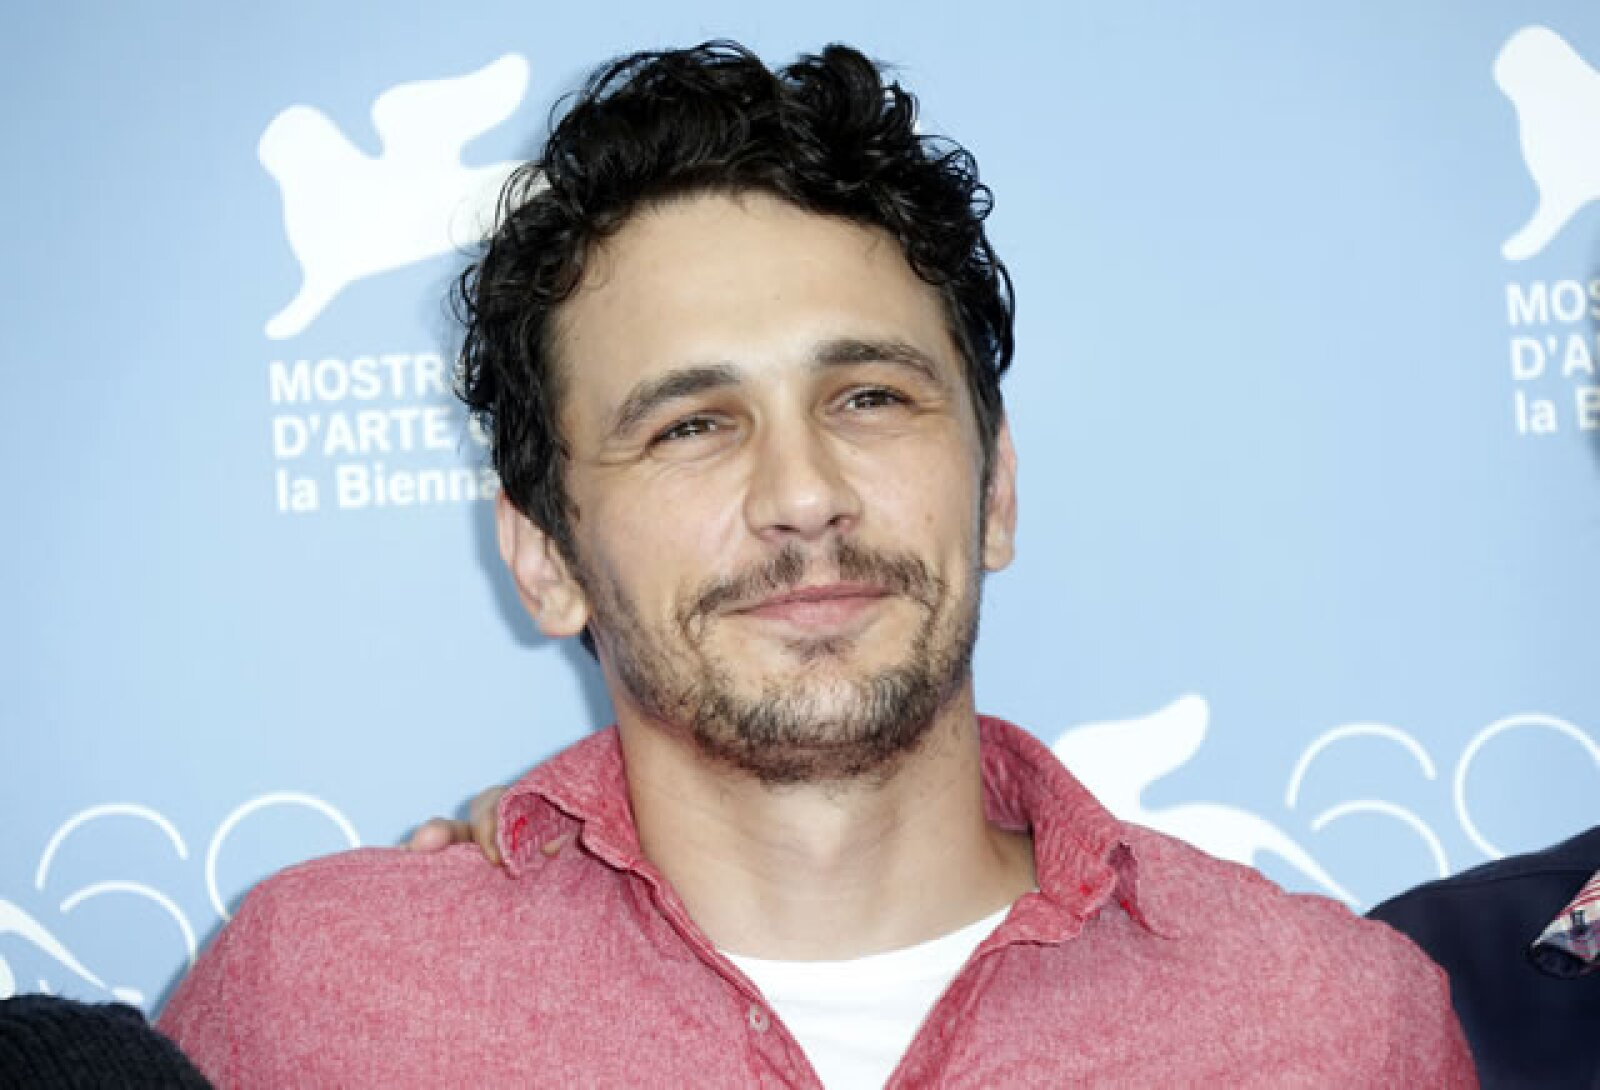 James Franco jugó con un look desaliñado.